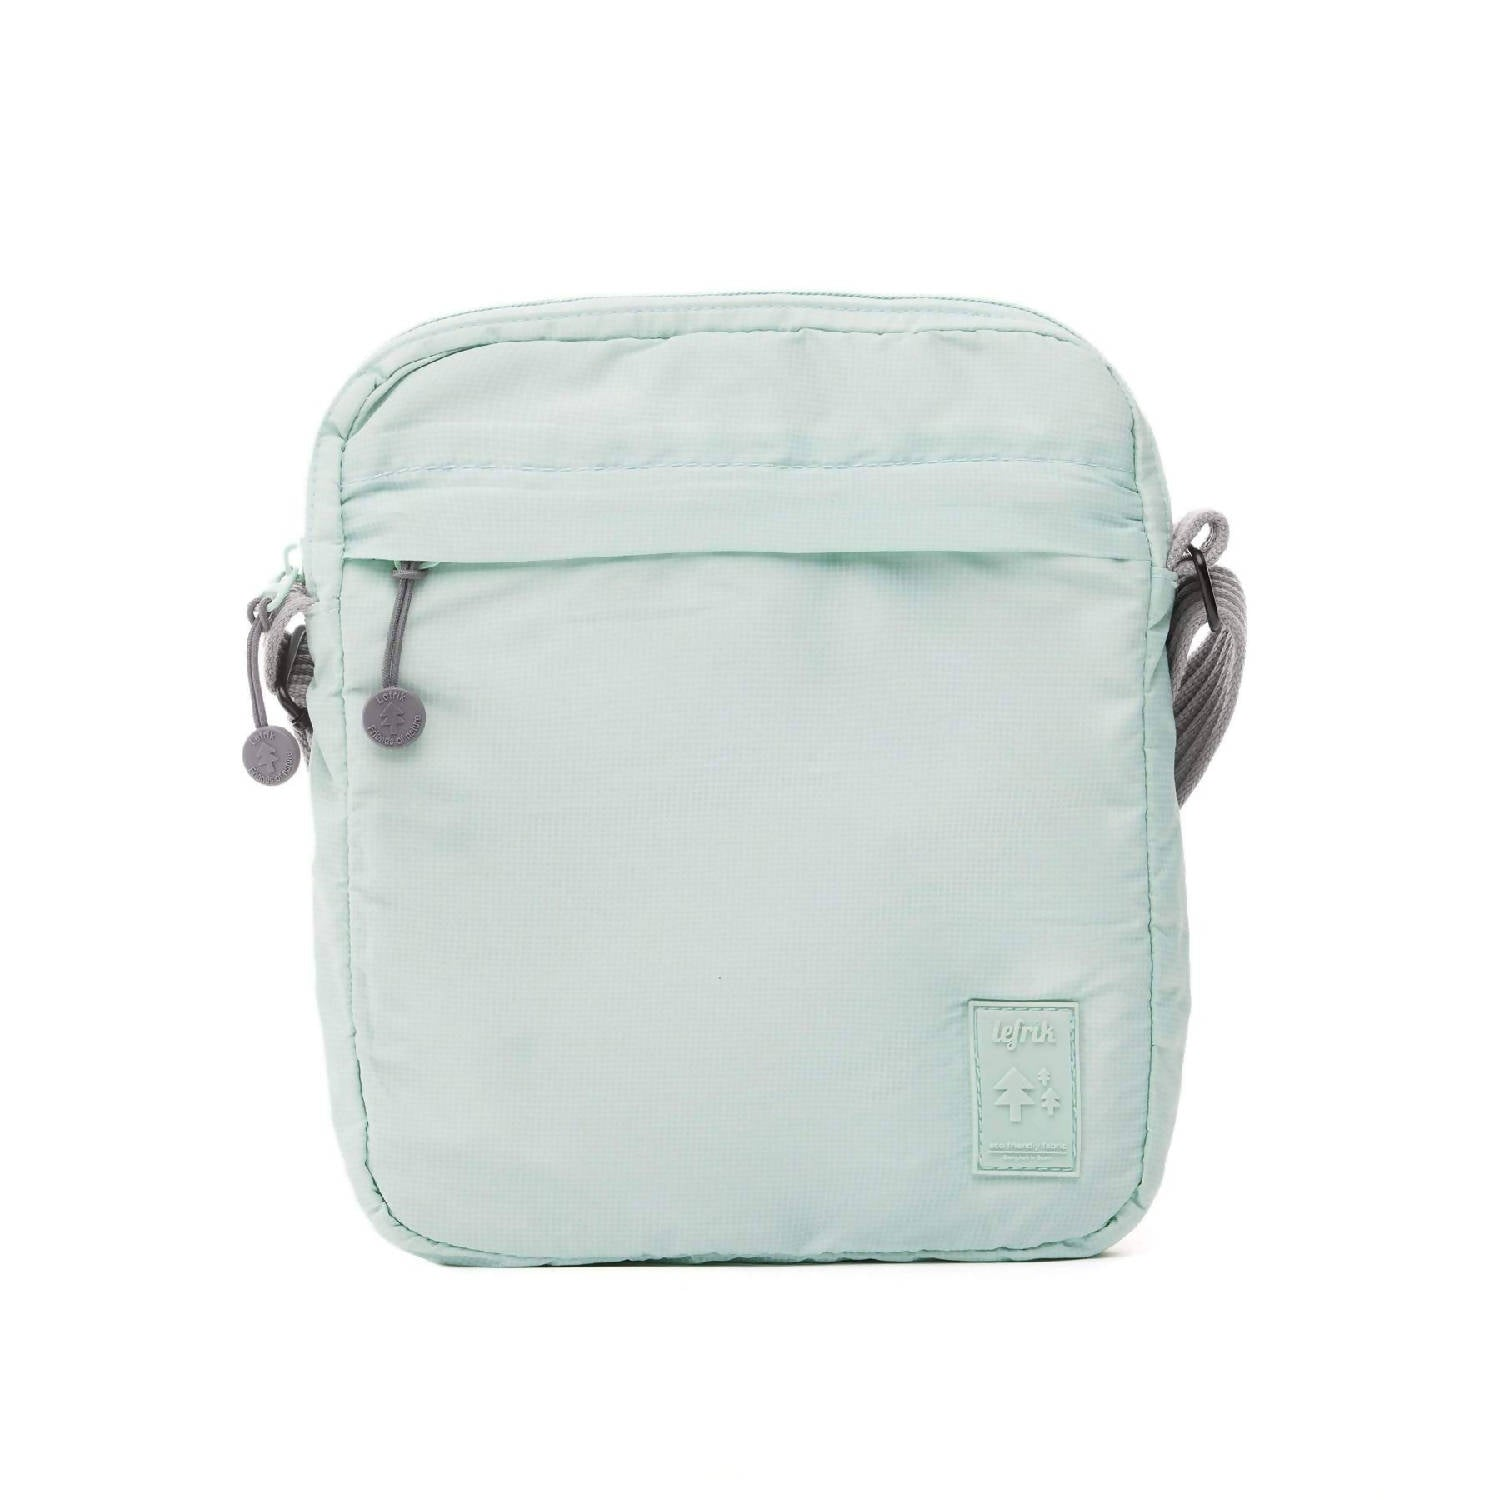 Soft Voyager Bag